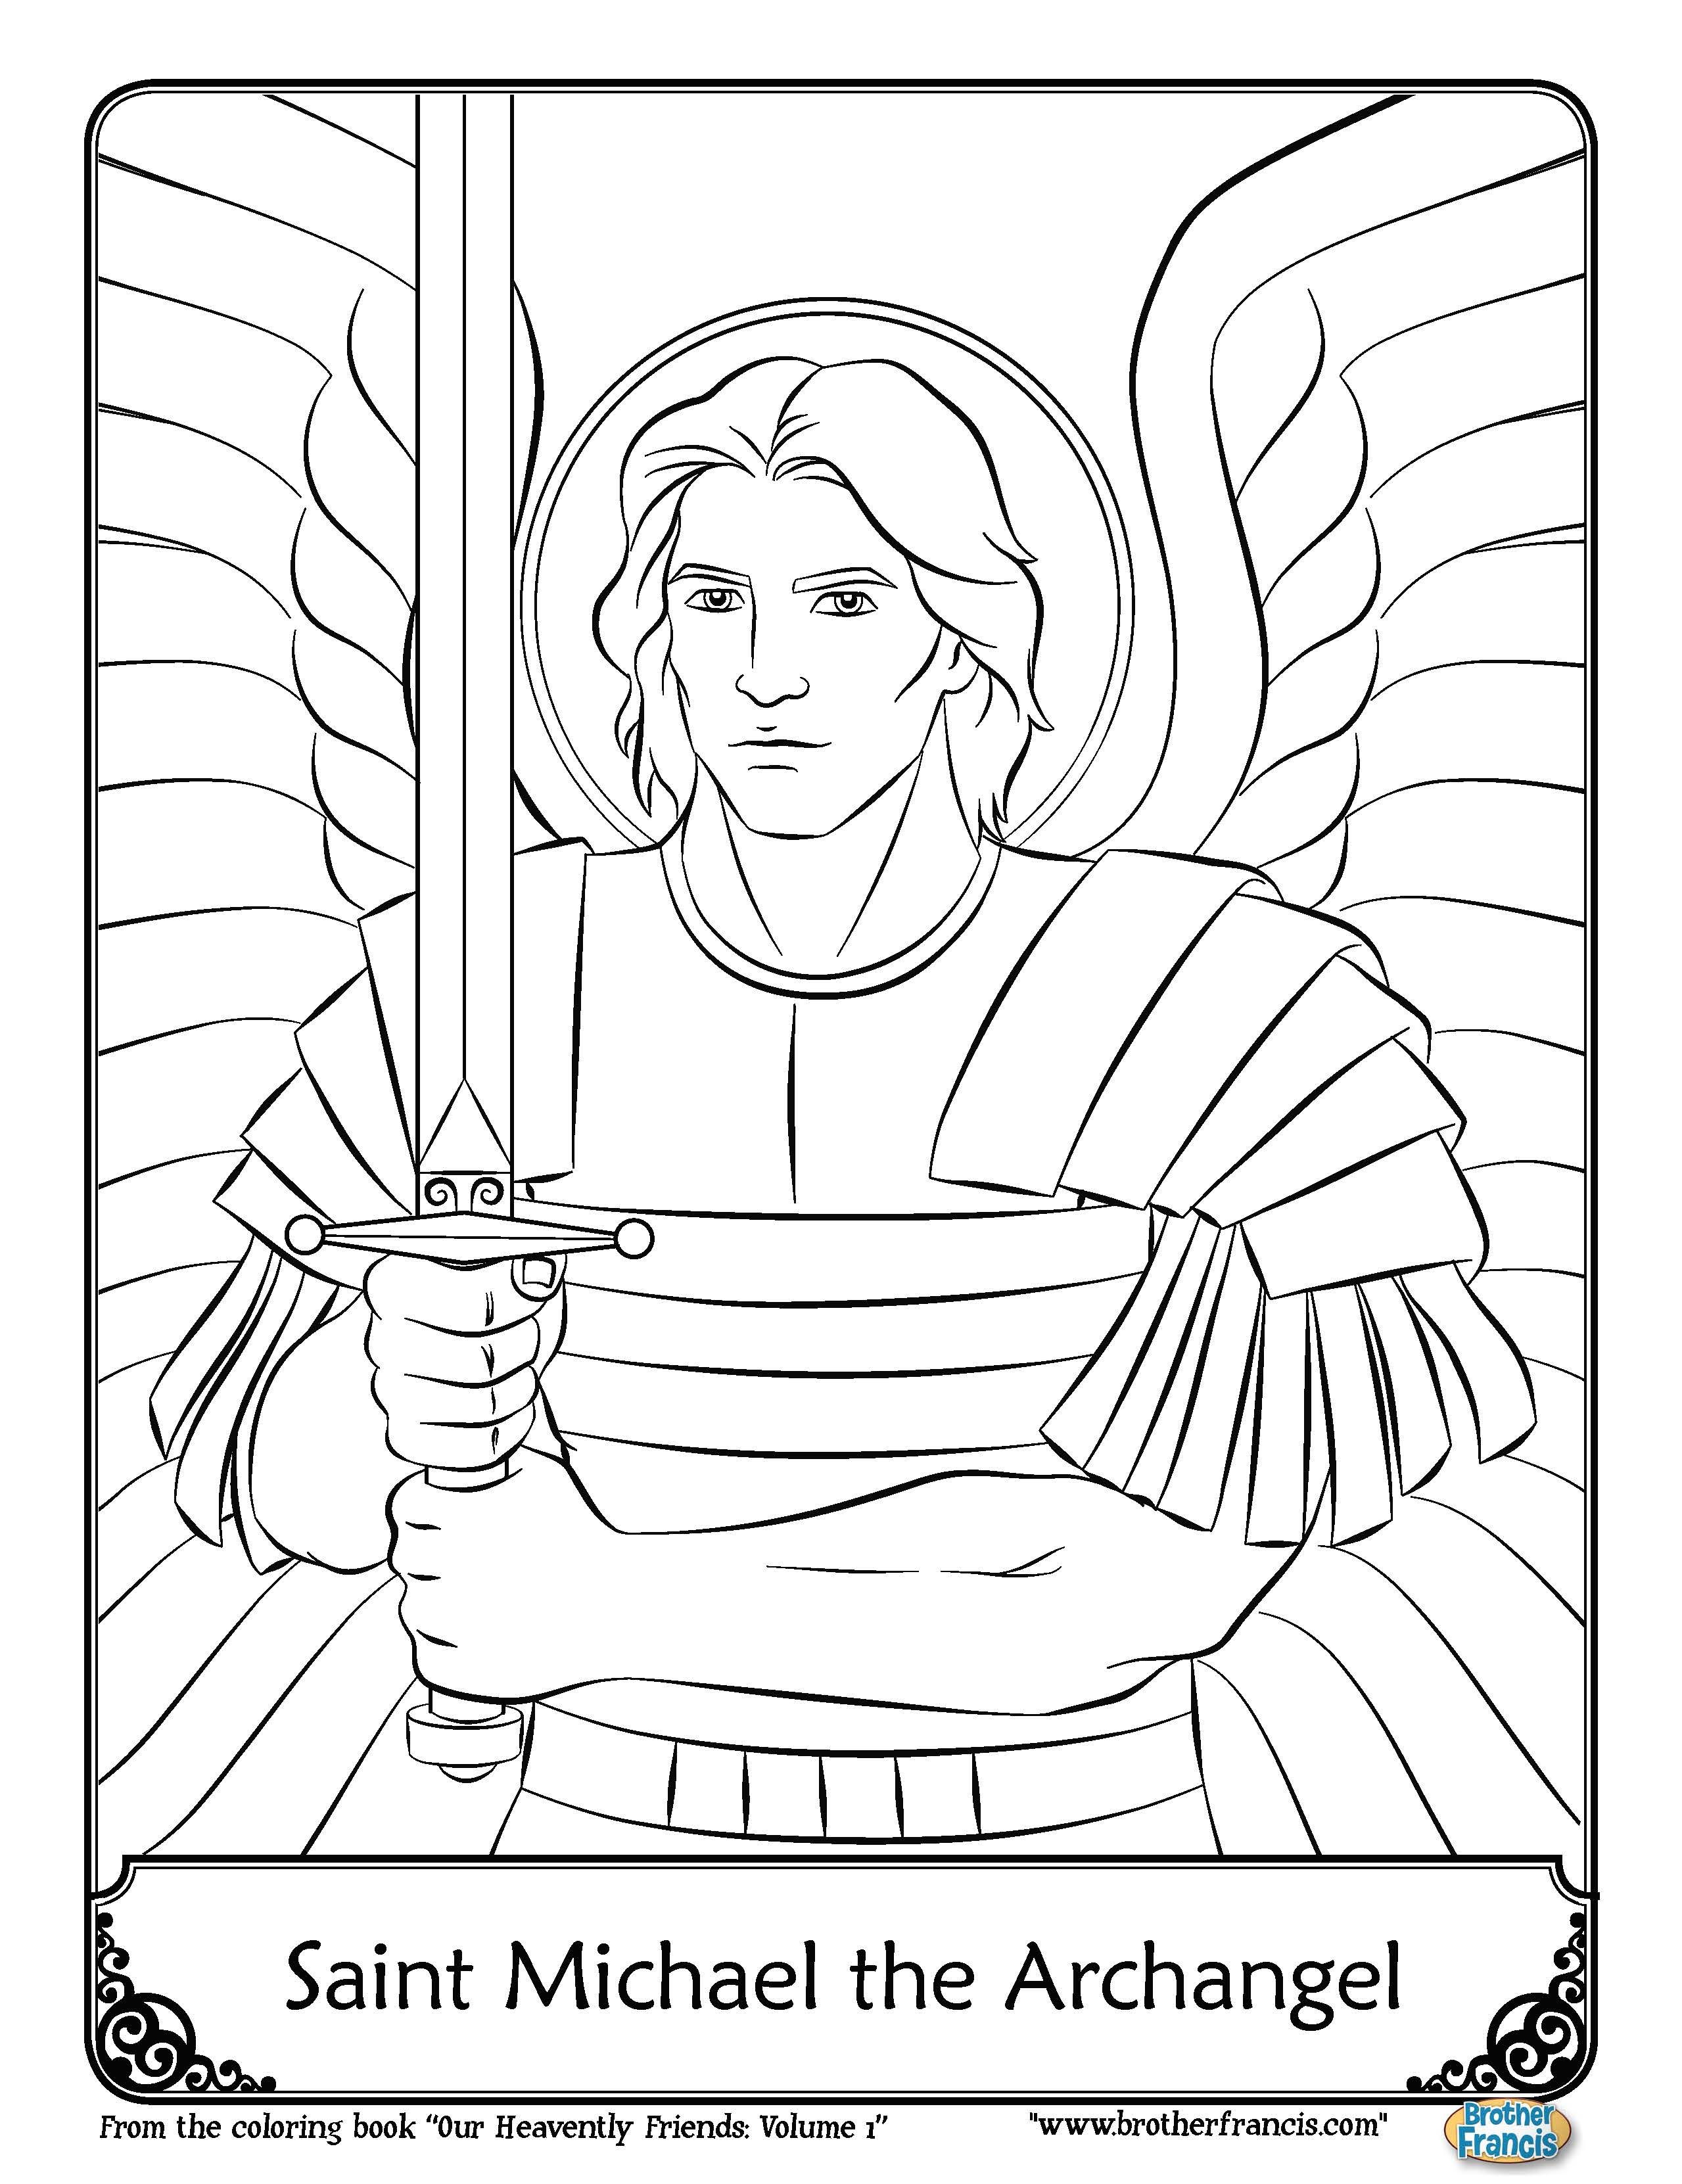 Free Printable Coloring Page Coloring Books Coloring Pages Catholic Coloring